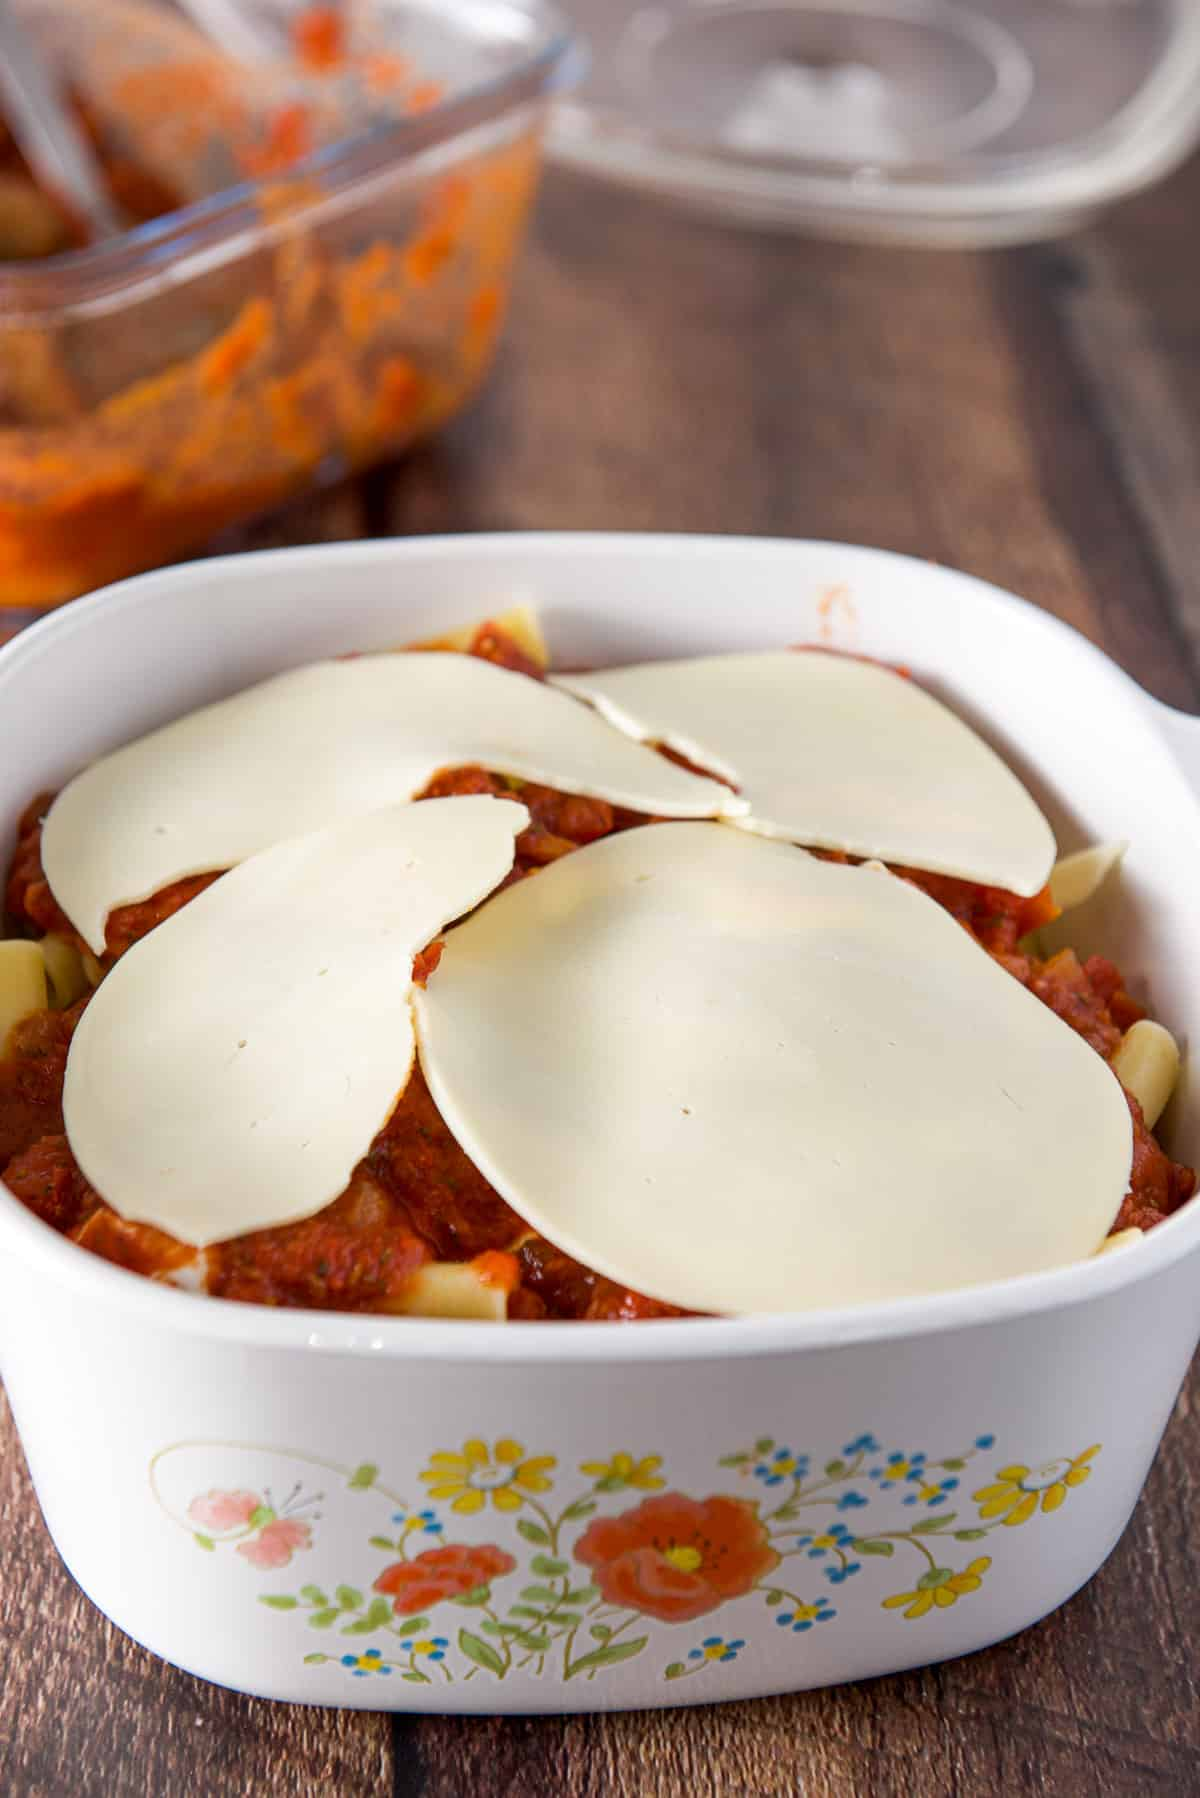 Cheese as the last layer in the casserole dish